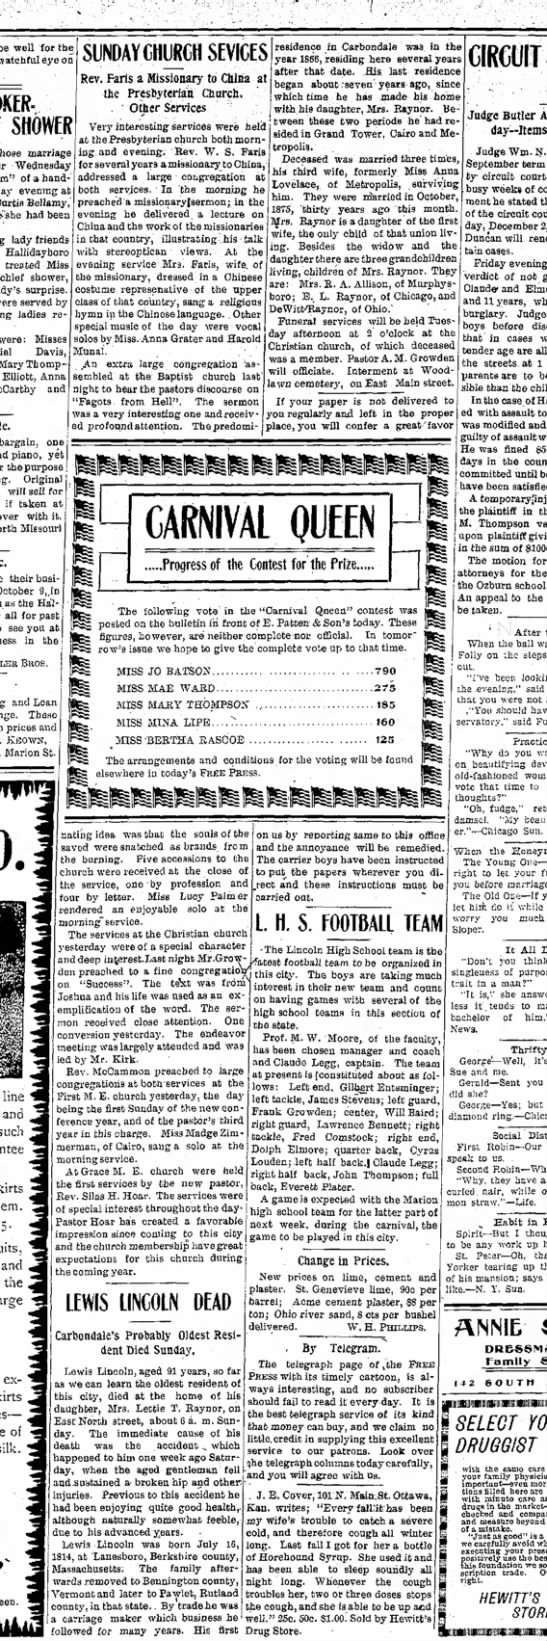 Lewis Lincoln9 Oct 1905Daily Free Pressp 2 - well for th watchful eye o SHOWER marriagi...